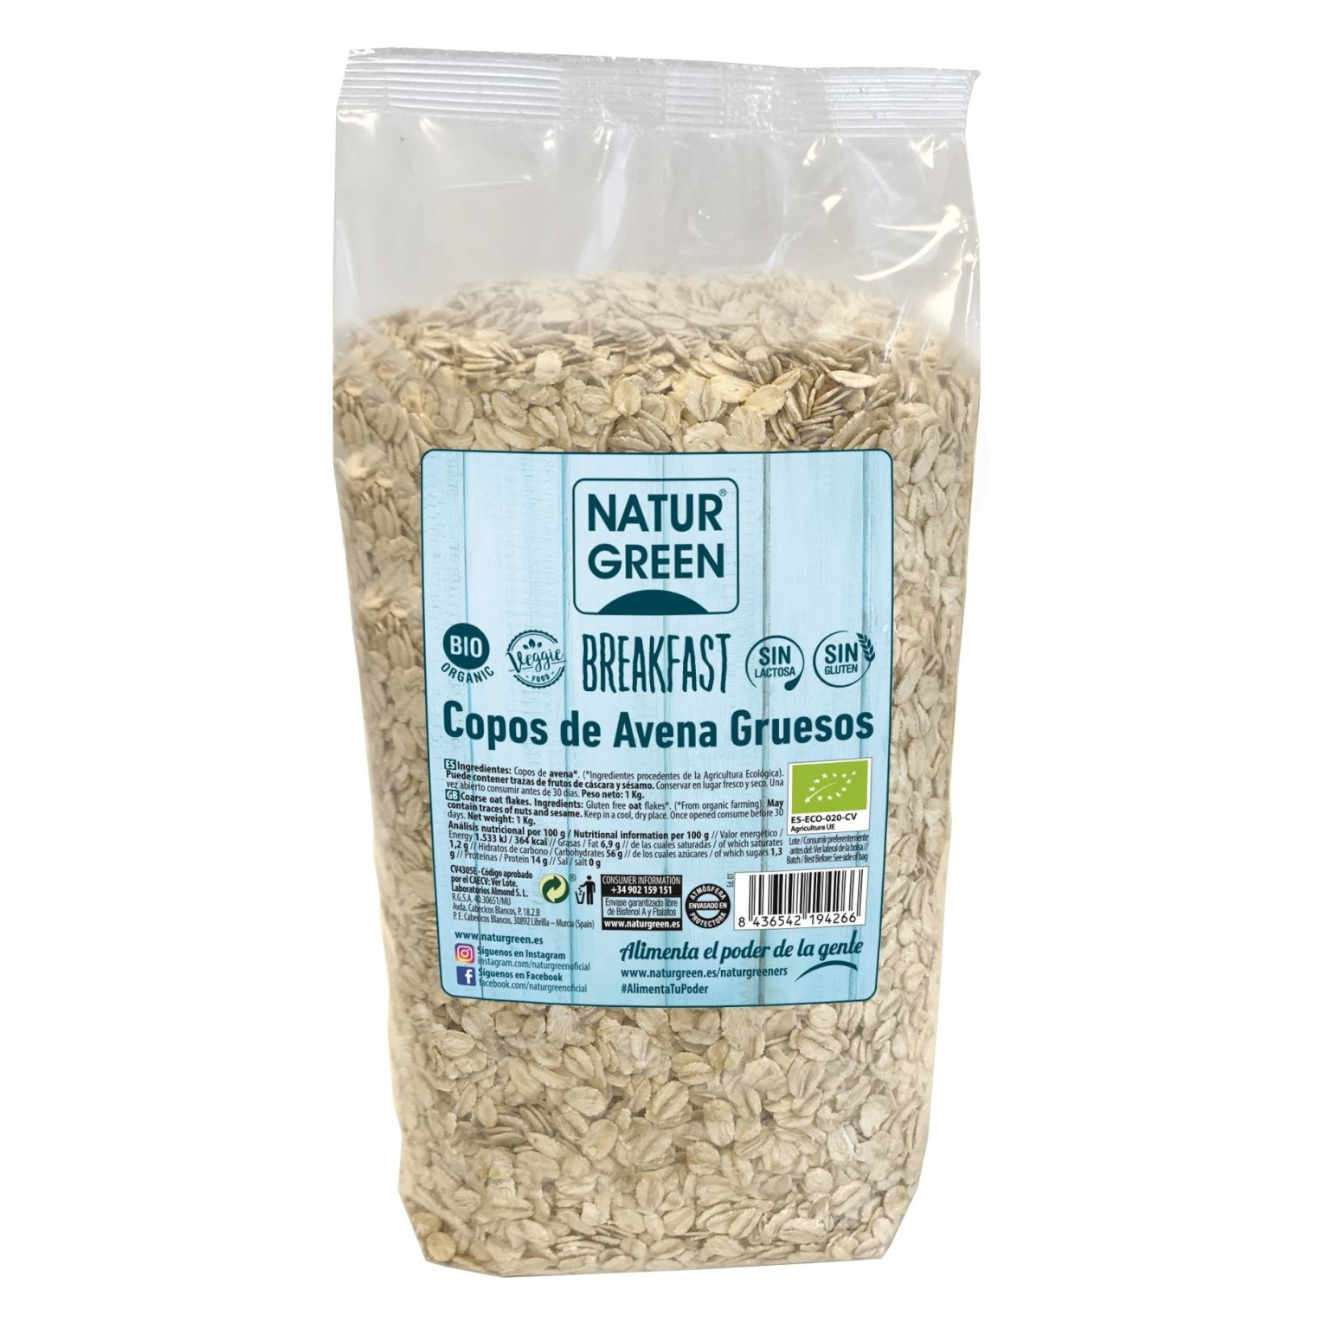 THICK BIO OAT FLAKES